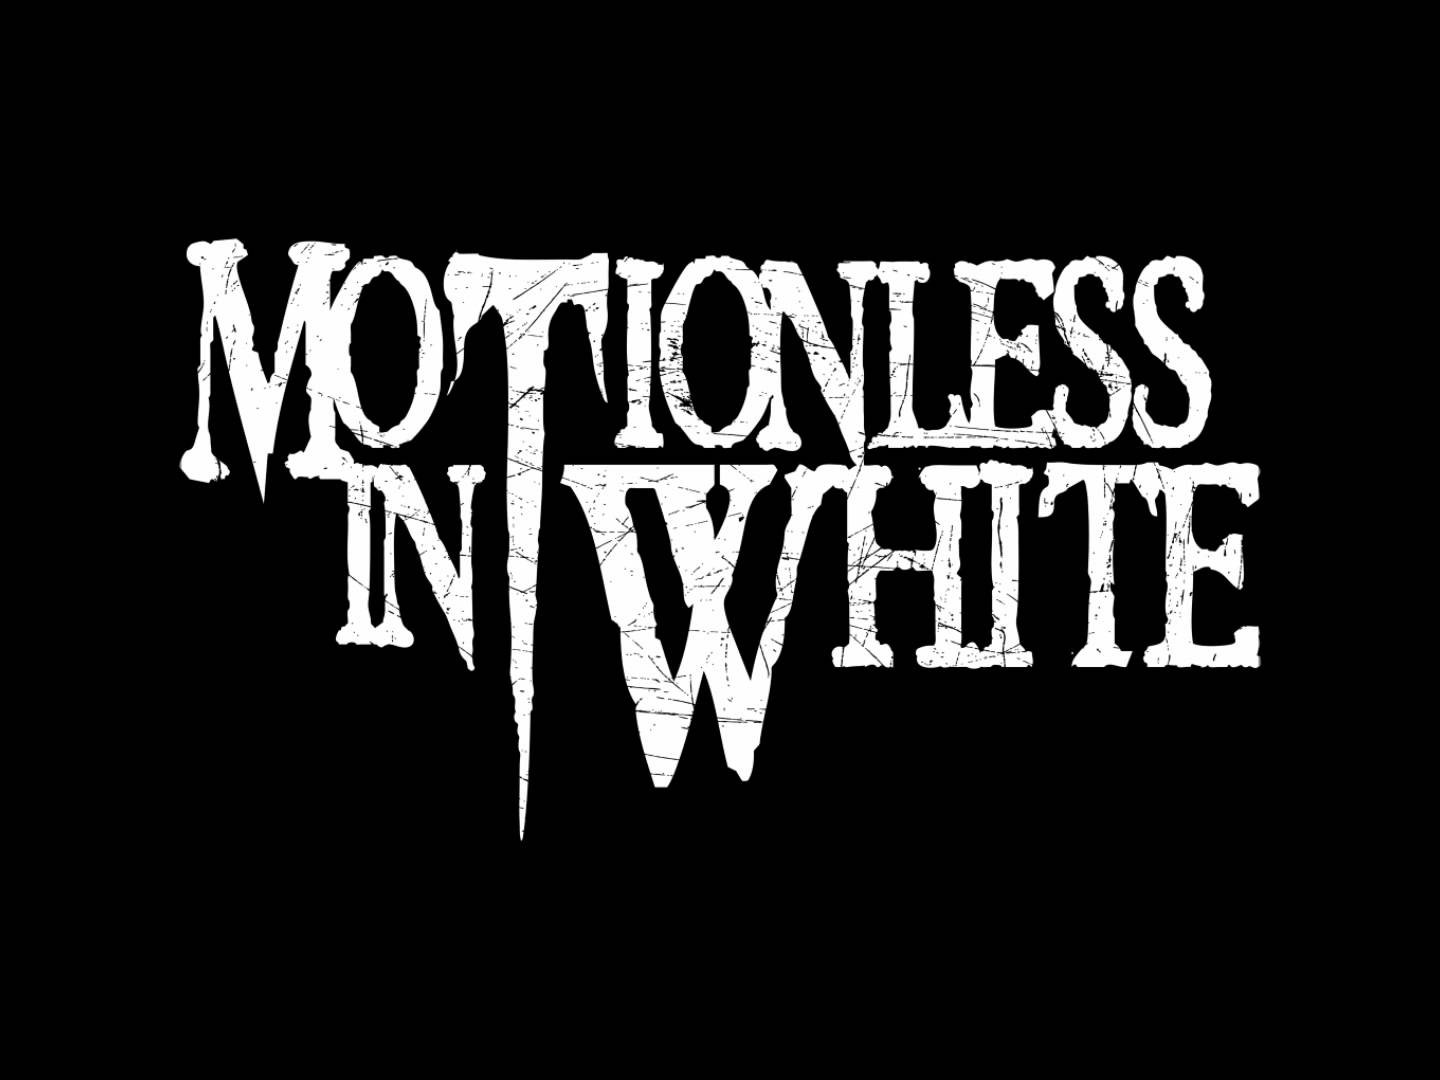 Motionless In White Metalcore Simple Background Typography 1440x1080